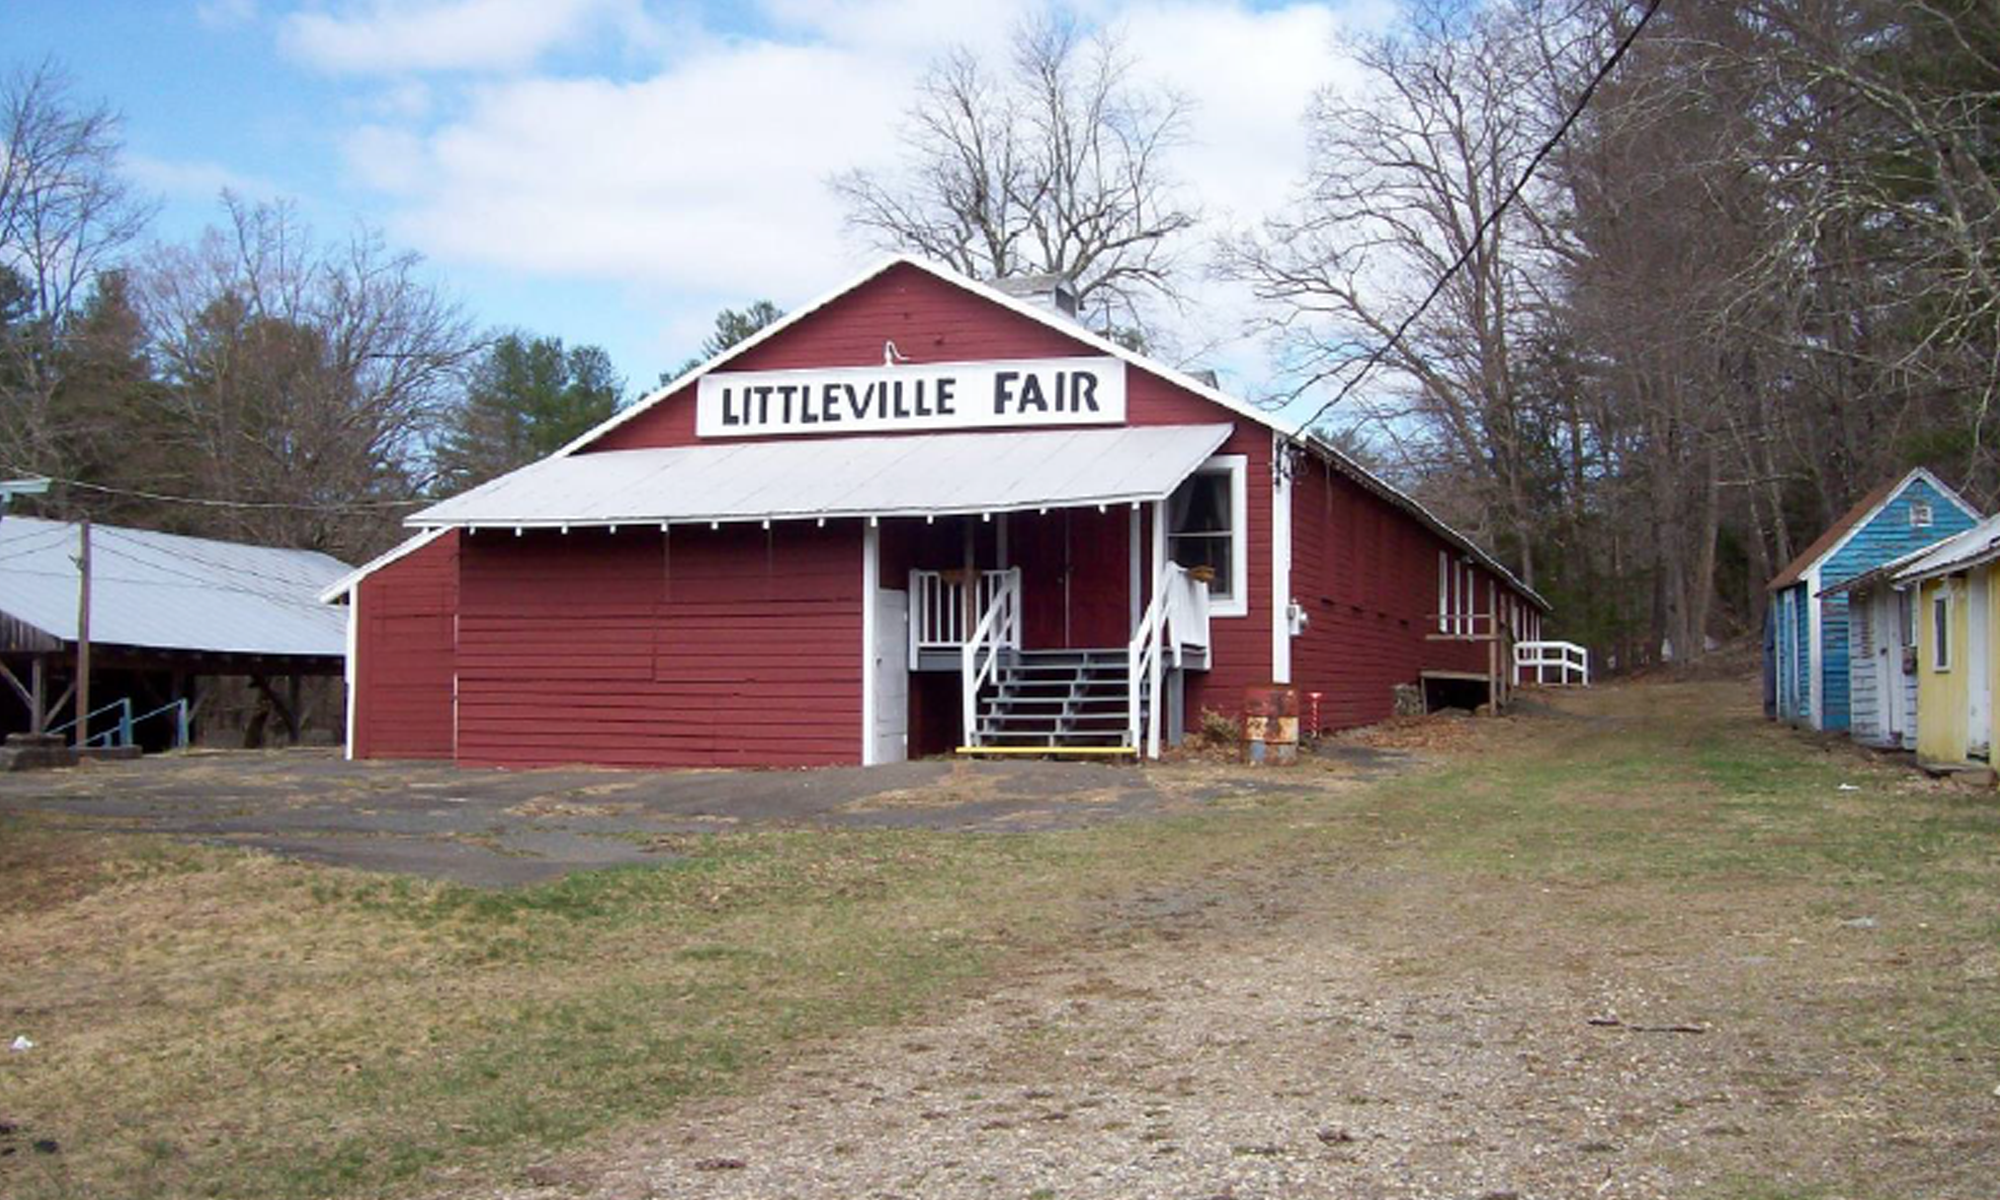 The Littleville Fair